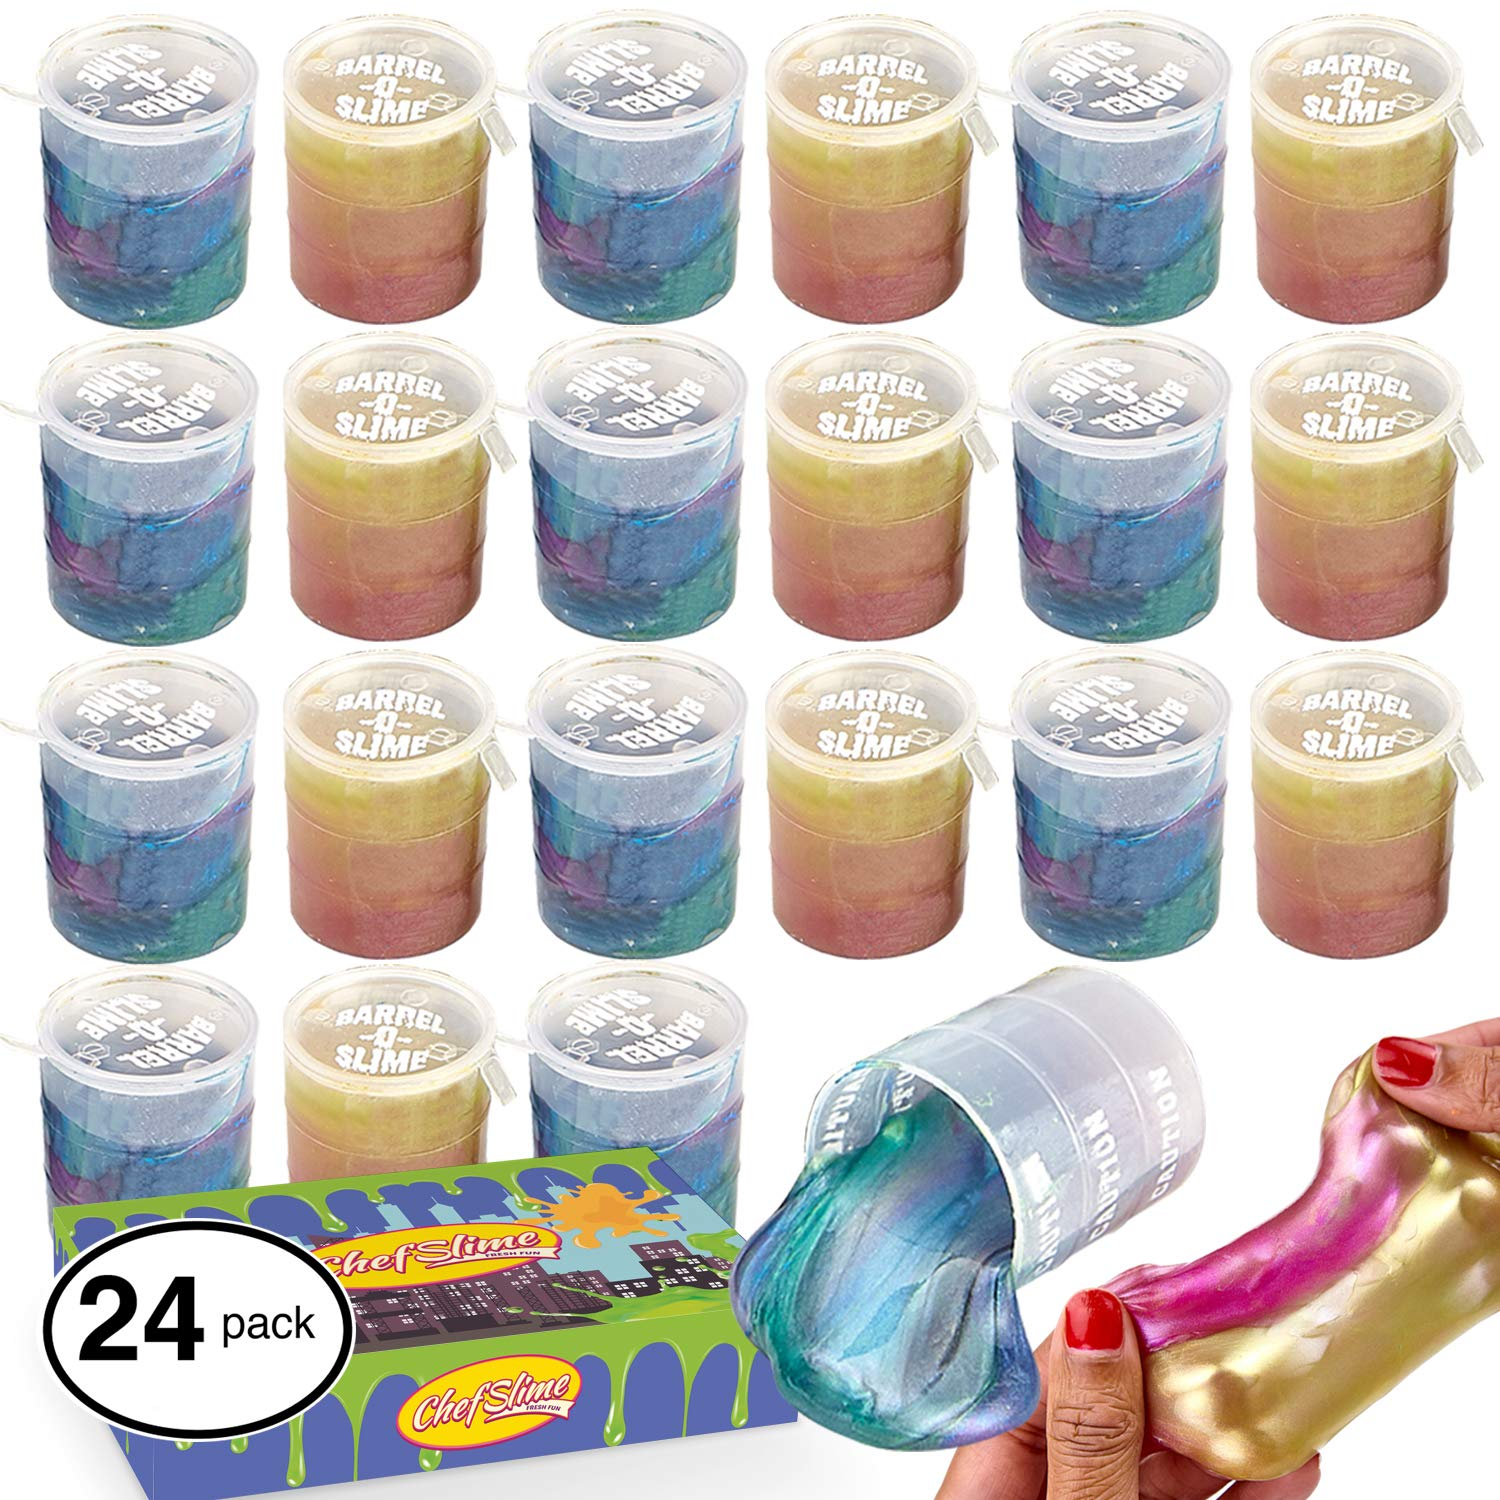 ChefSlime Barrel O Slime Mud Sludge Putty - Wet, Non Sticky, Stress Relief, Super Soft & Squishy Toy for Kids |Jumbo Pack | 24 Pcs by ChefSlime